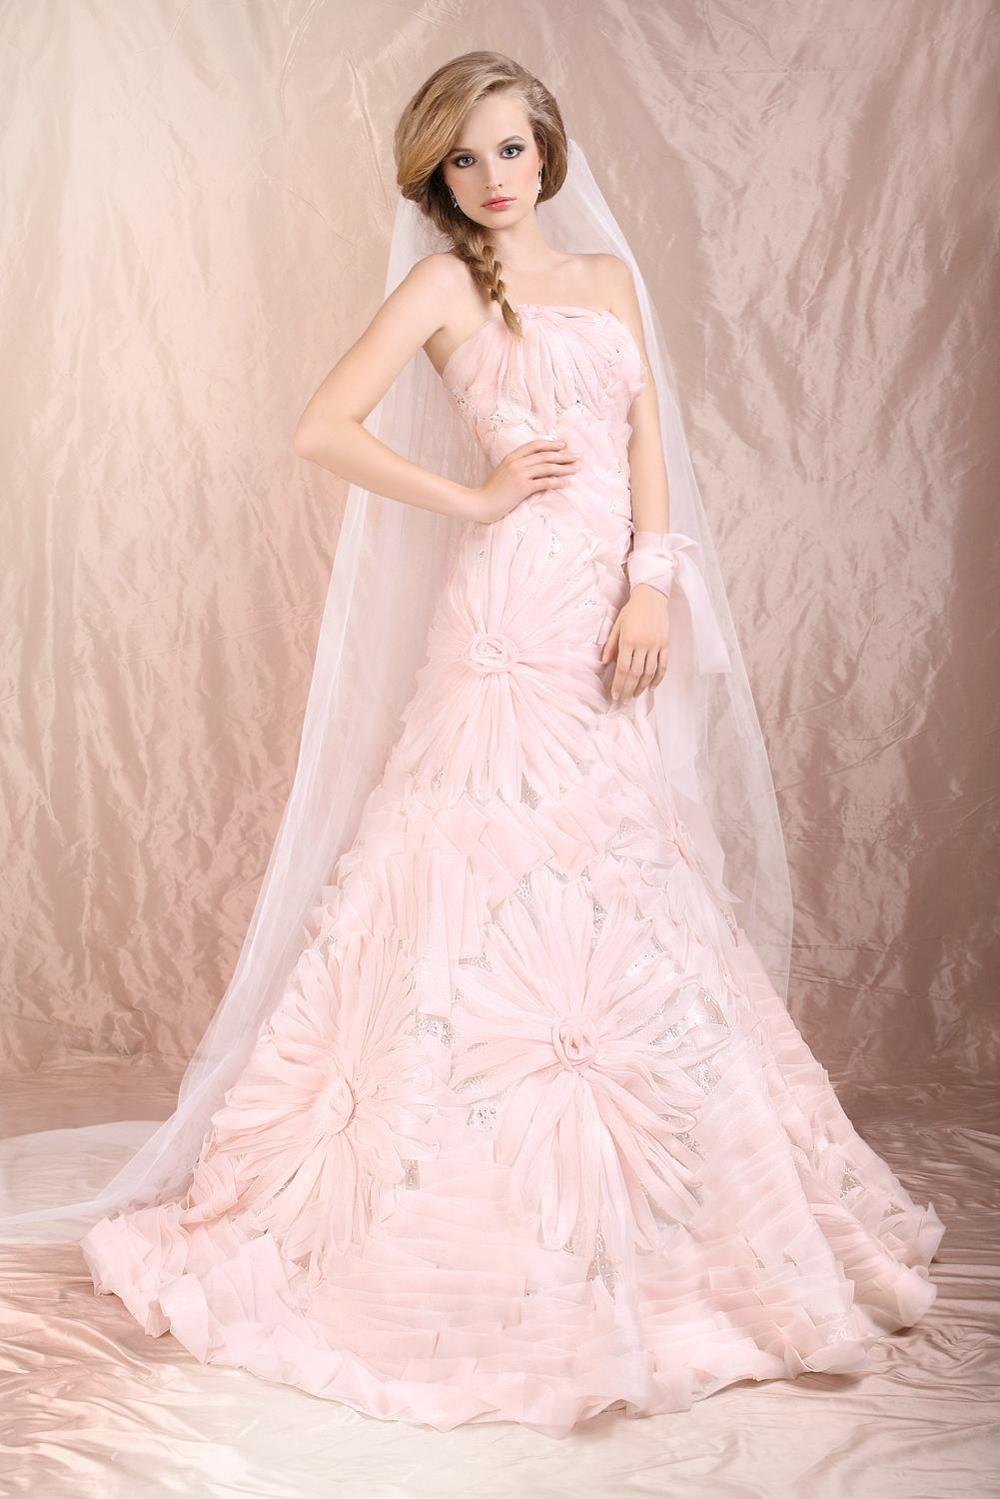 How to pick out a good blush wedding dress wedding and for How to choose a wedding dress